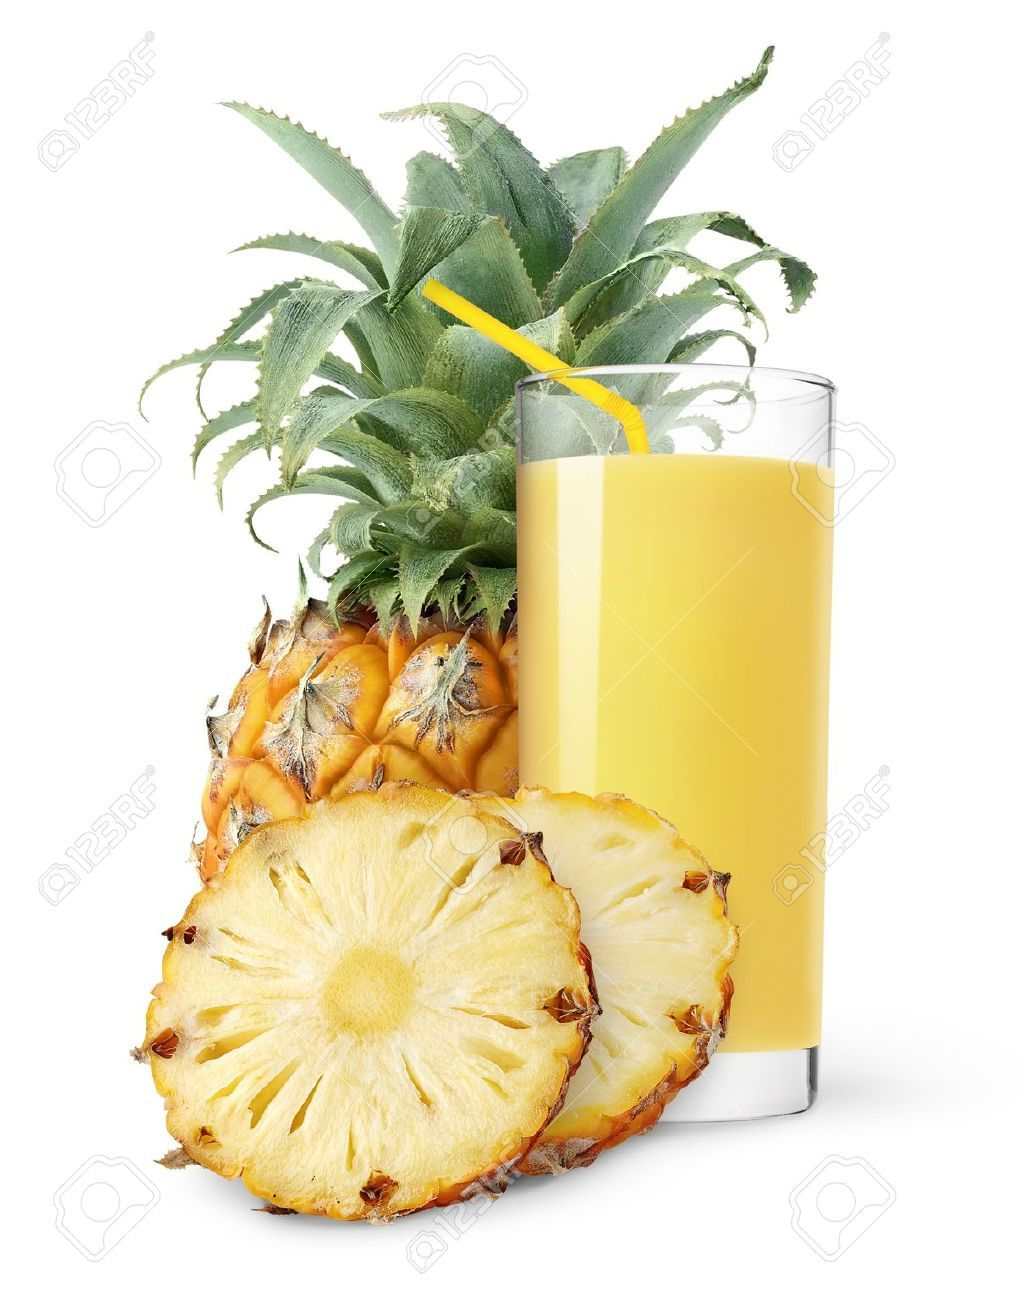 Ananas juice clipart svg black and white download Pineapple Juice Suppliers | Products | Pineapple juice, Pineapple ... svg black and white download